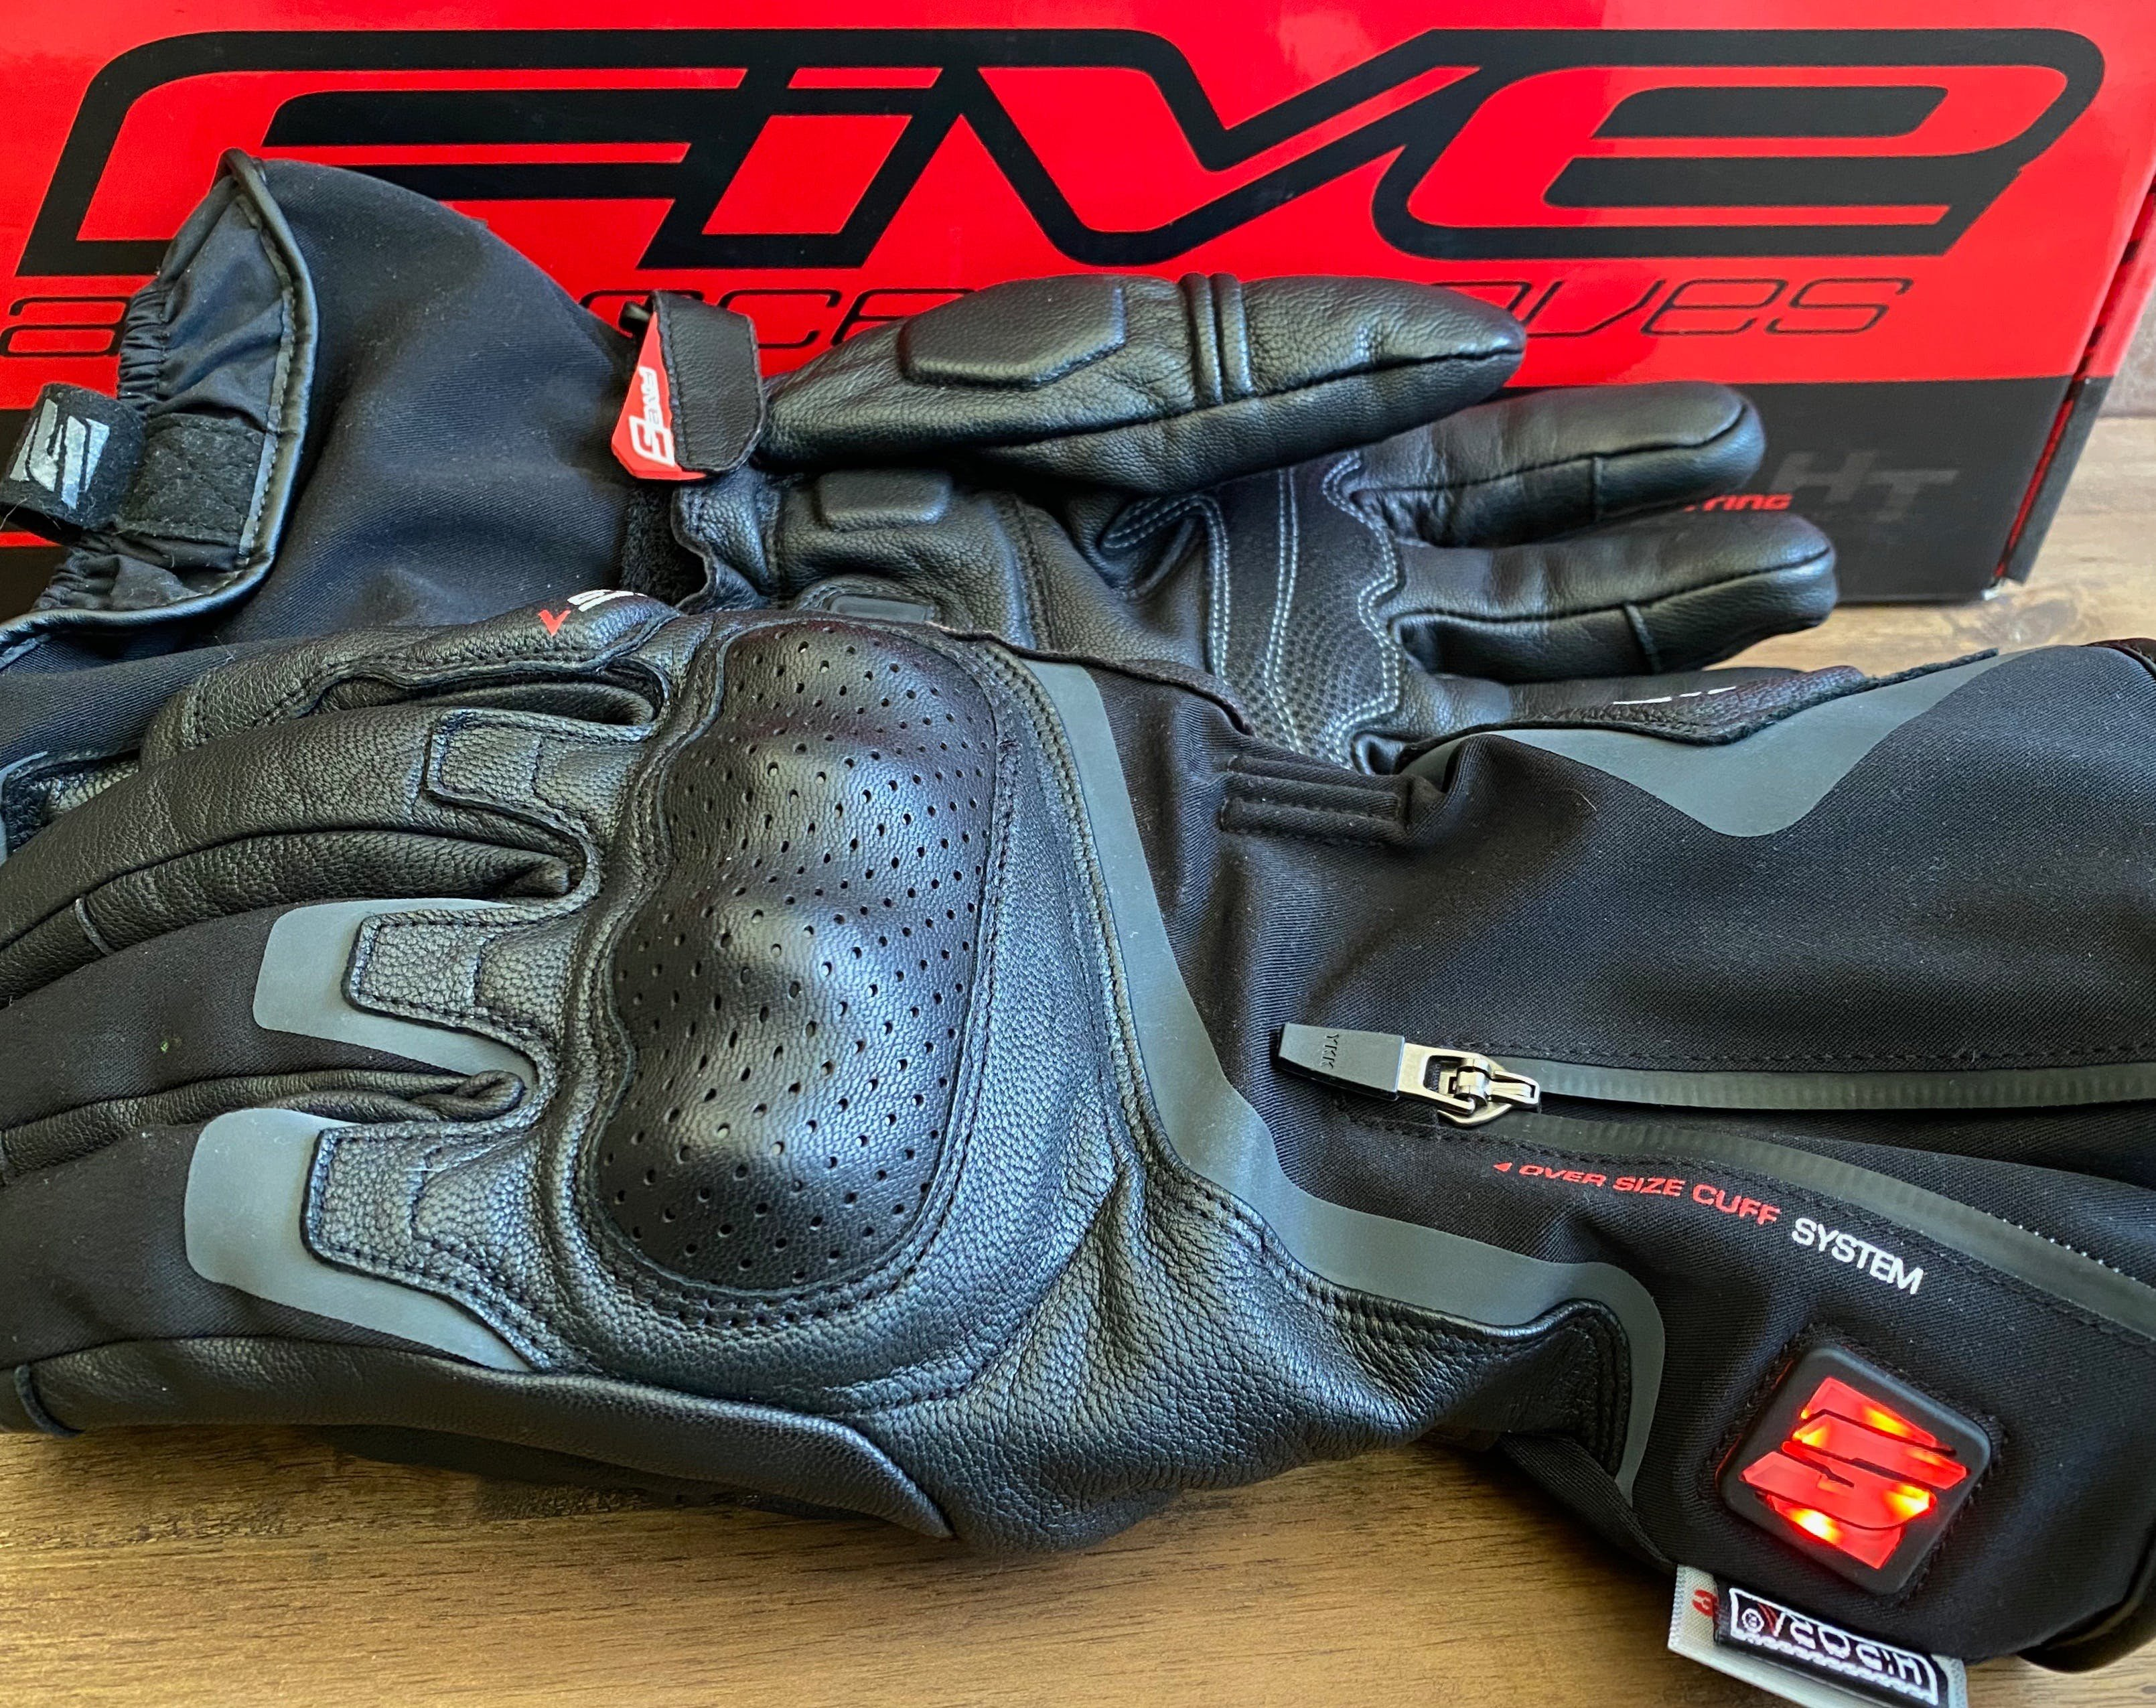 A pair of Five HG-1 gloves in front of their red box